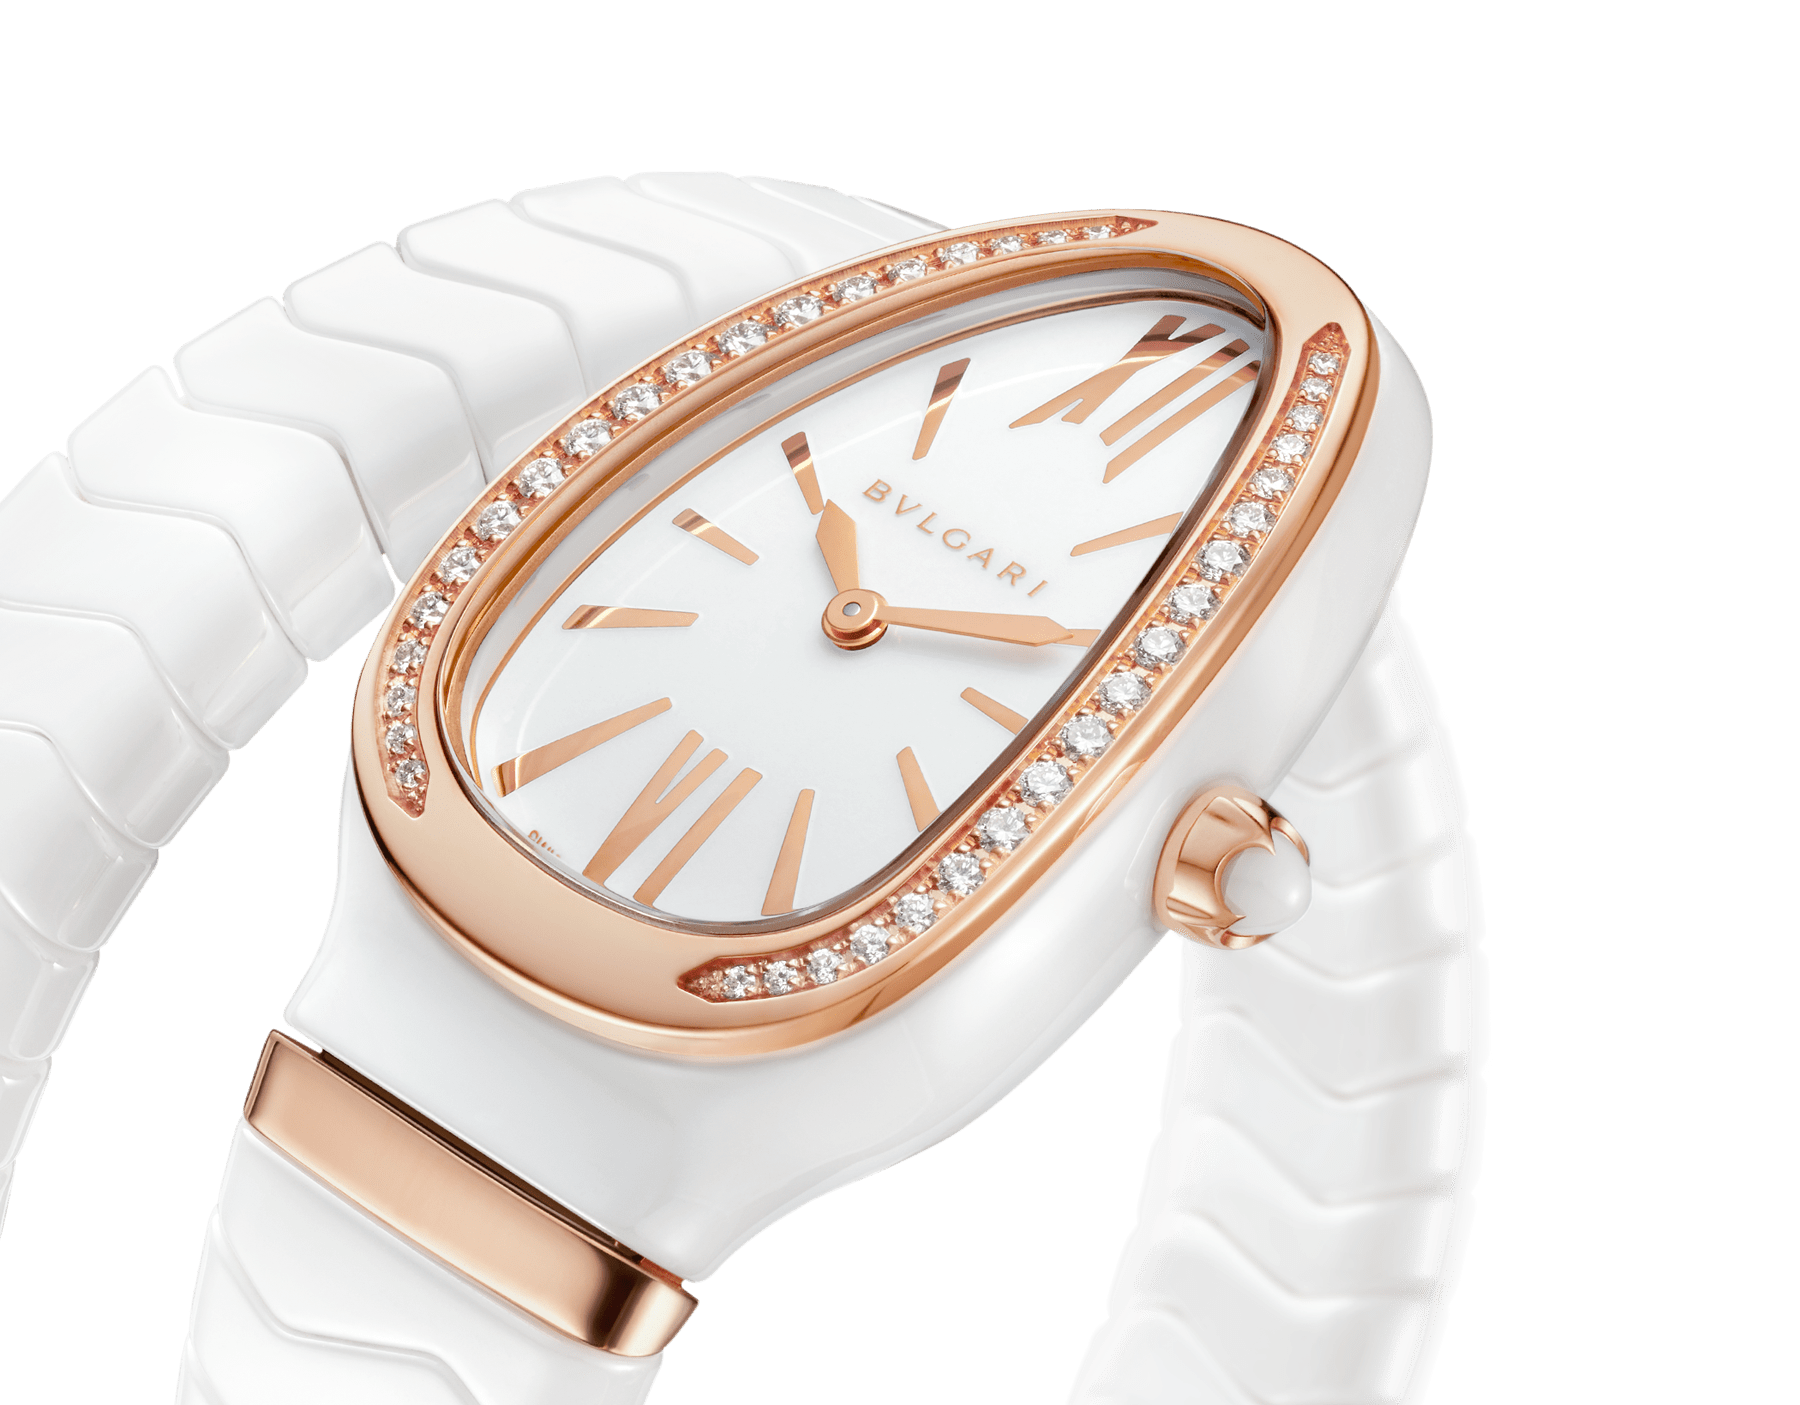 Serpenti Spiga single spiral watch with white ceramic case, 18 kt rose gold bezel set with brilliant cut diamonds, white lacquered dial, white ceramic bracelet with 18 kt rose gold elements. 102613 image 3